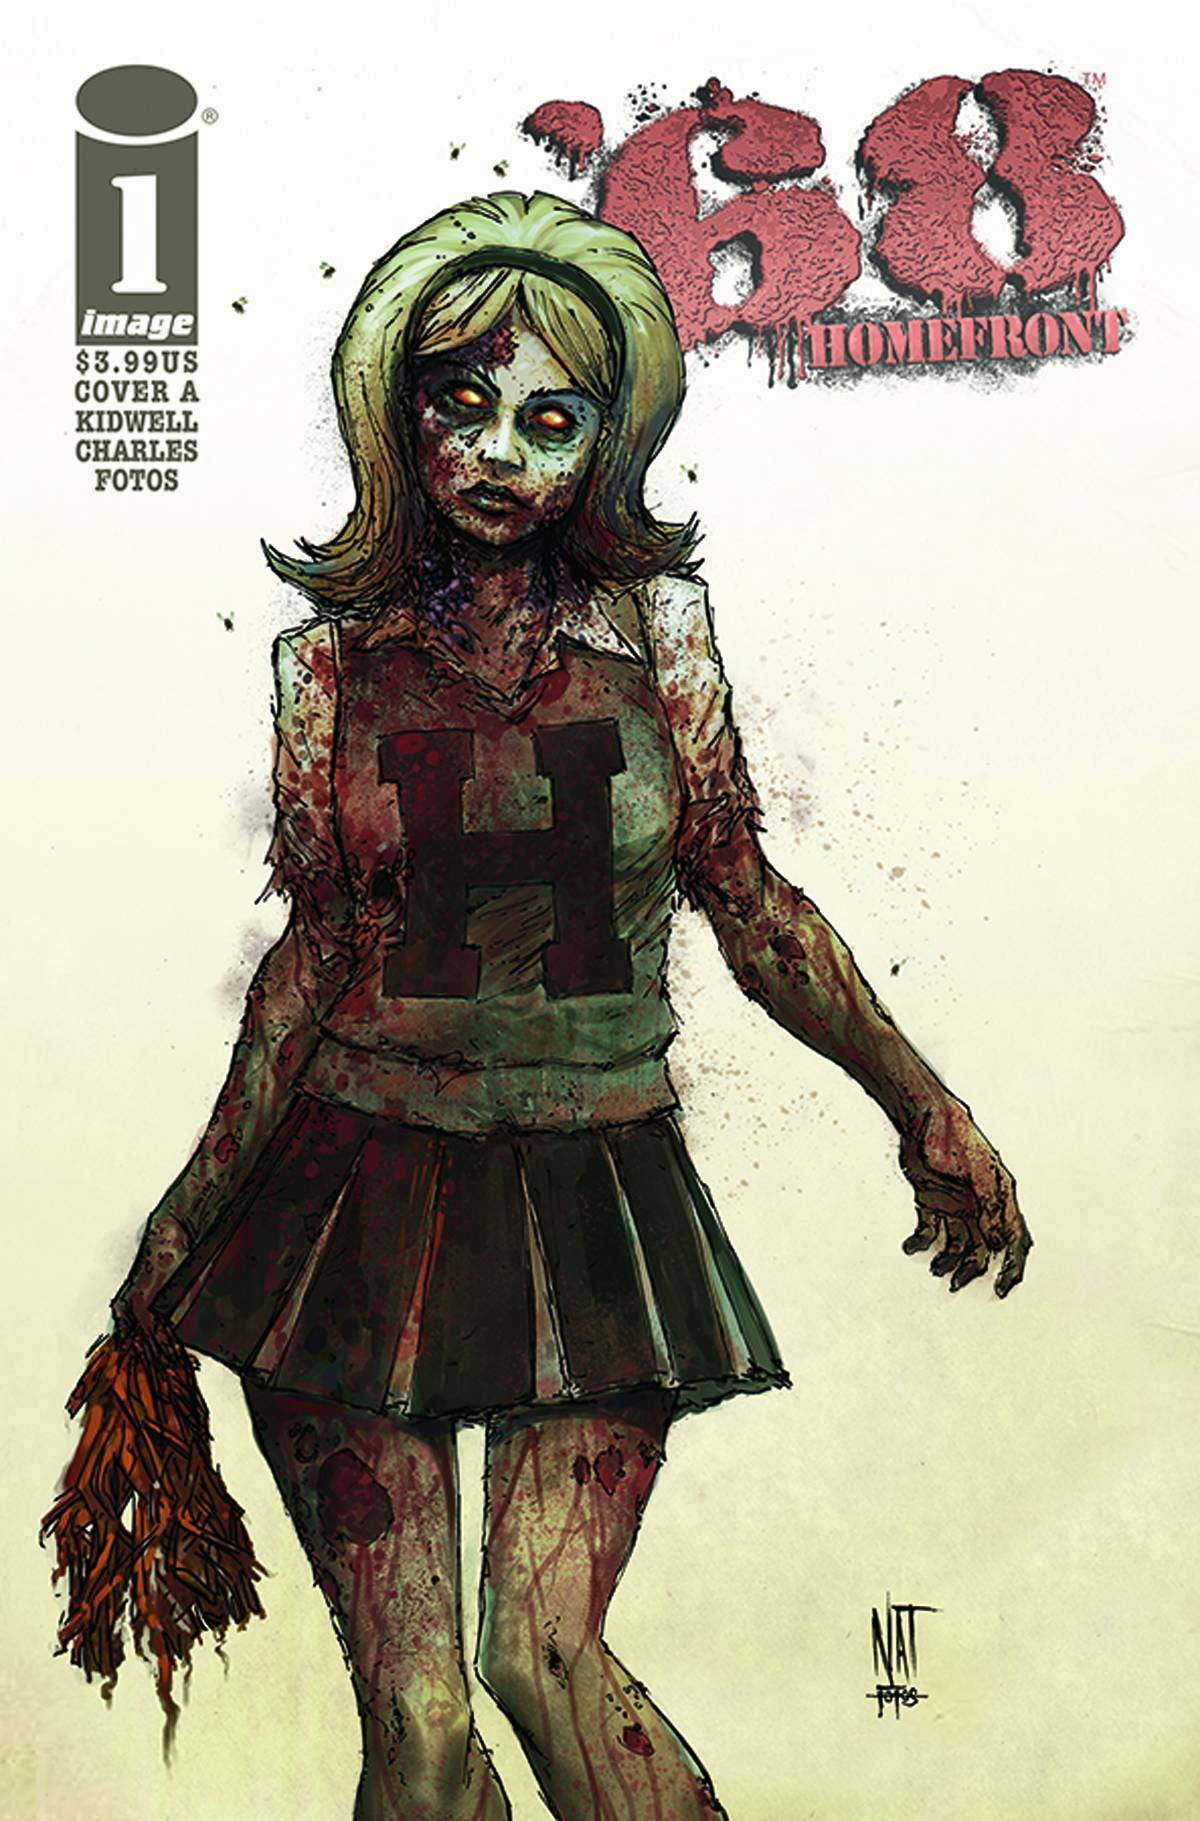 Read Online 68 HOMEFRONT #1 (OF 4) CVR A JONES & FOTOS (MR) PDF